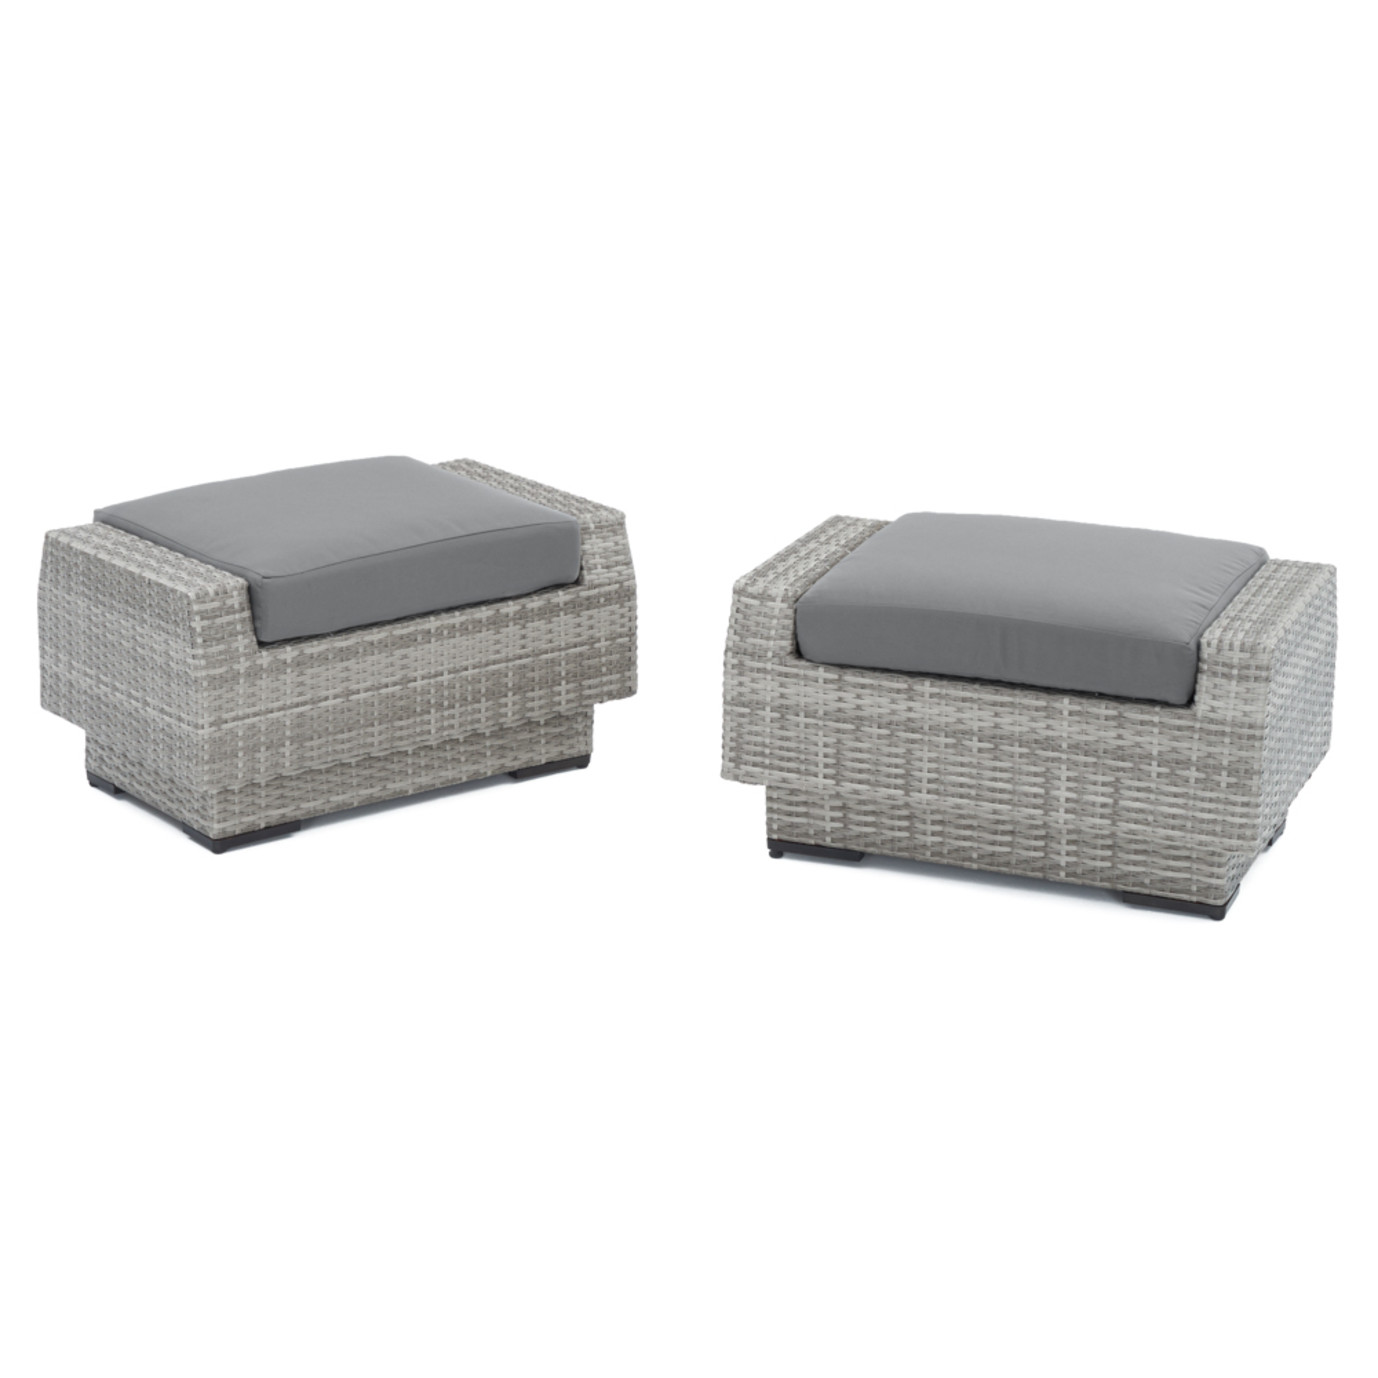 Cannes™ Club Ottomans - Charcoal Gray